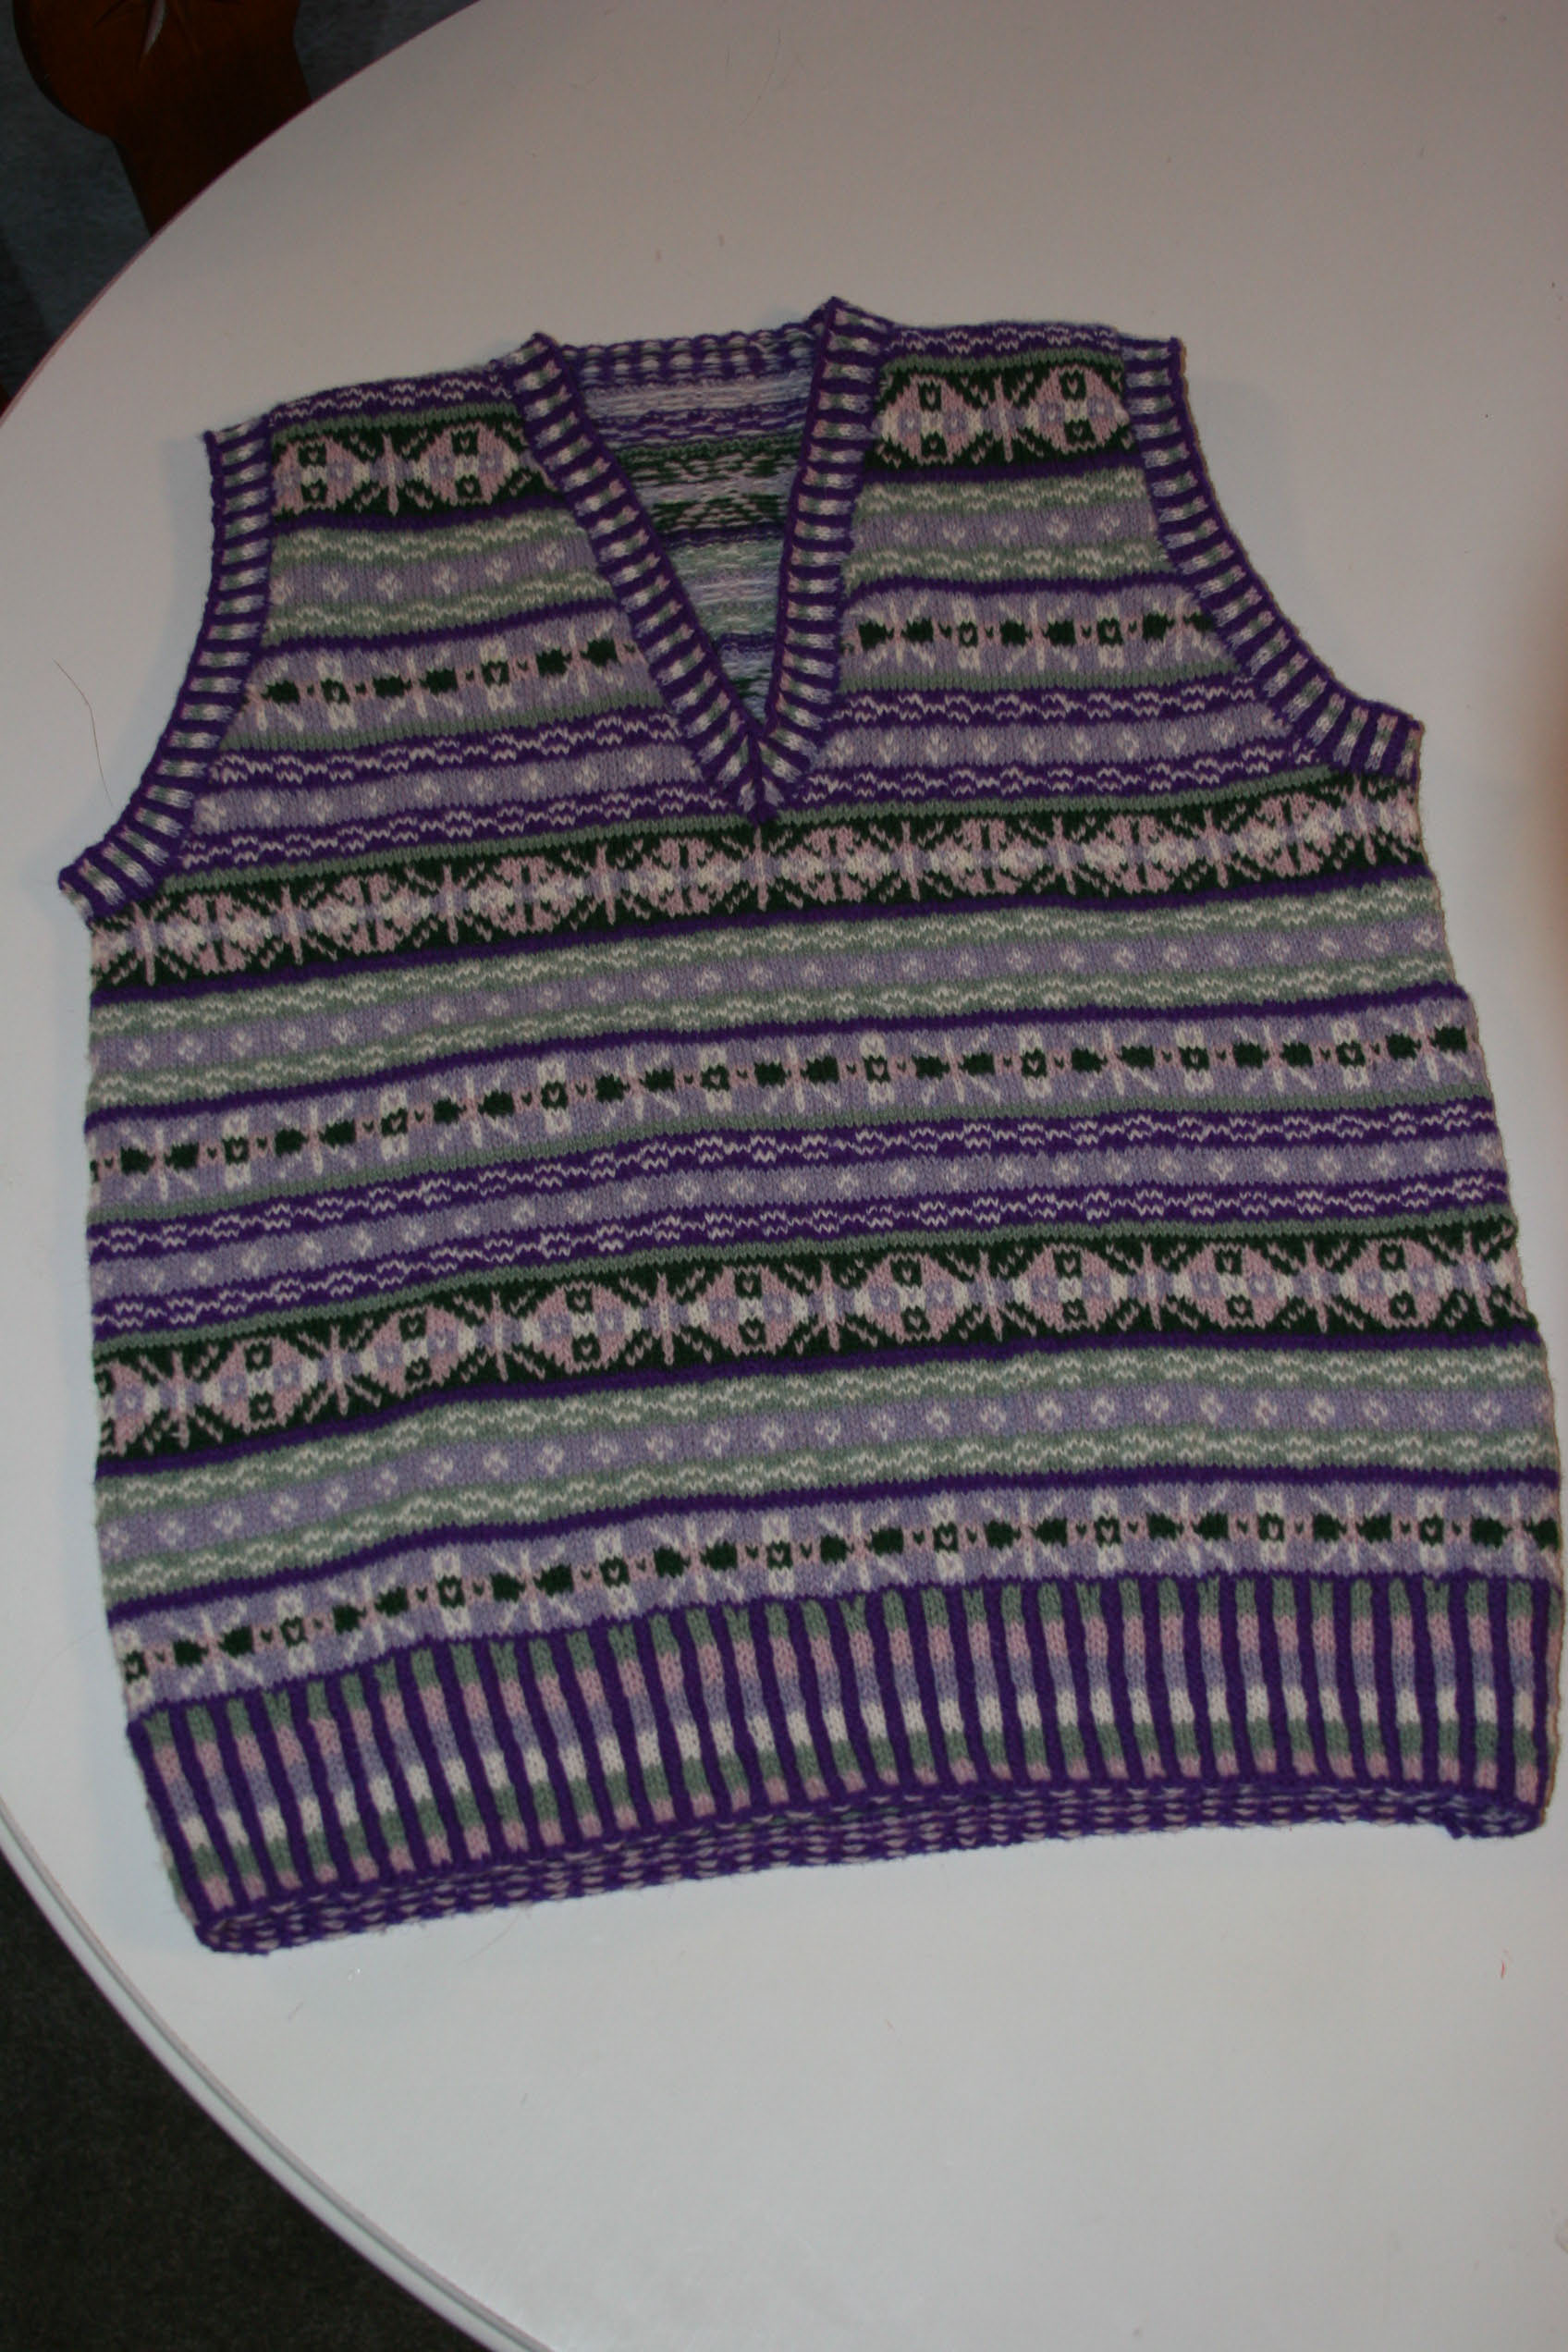 """Purple Fair Isle Vest – The Art of Fair Isle Knitting by Ann Feitelson – """"Hillhead Slipover"""" knitted in Jamieson and Smith Shetland wool in blues, grays, and black."""